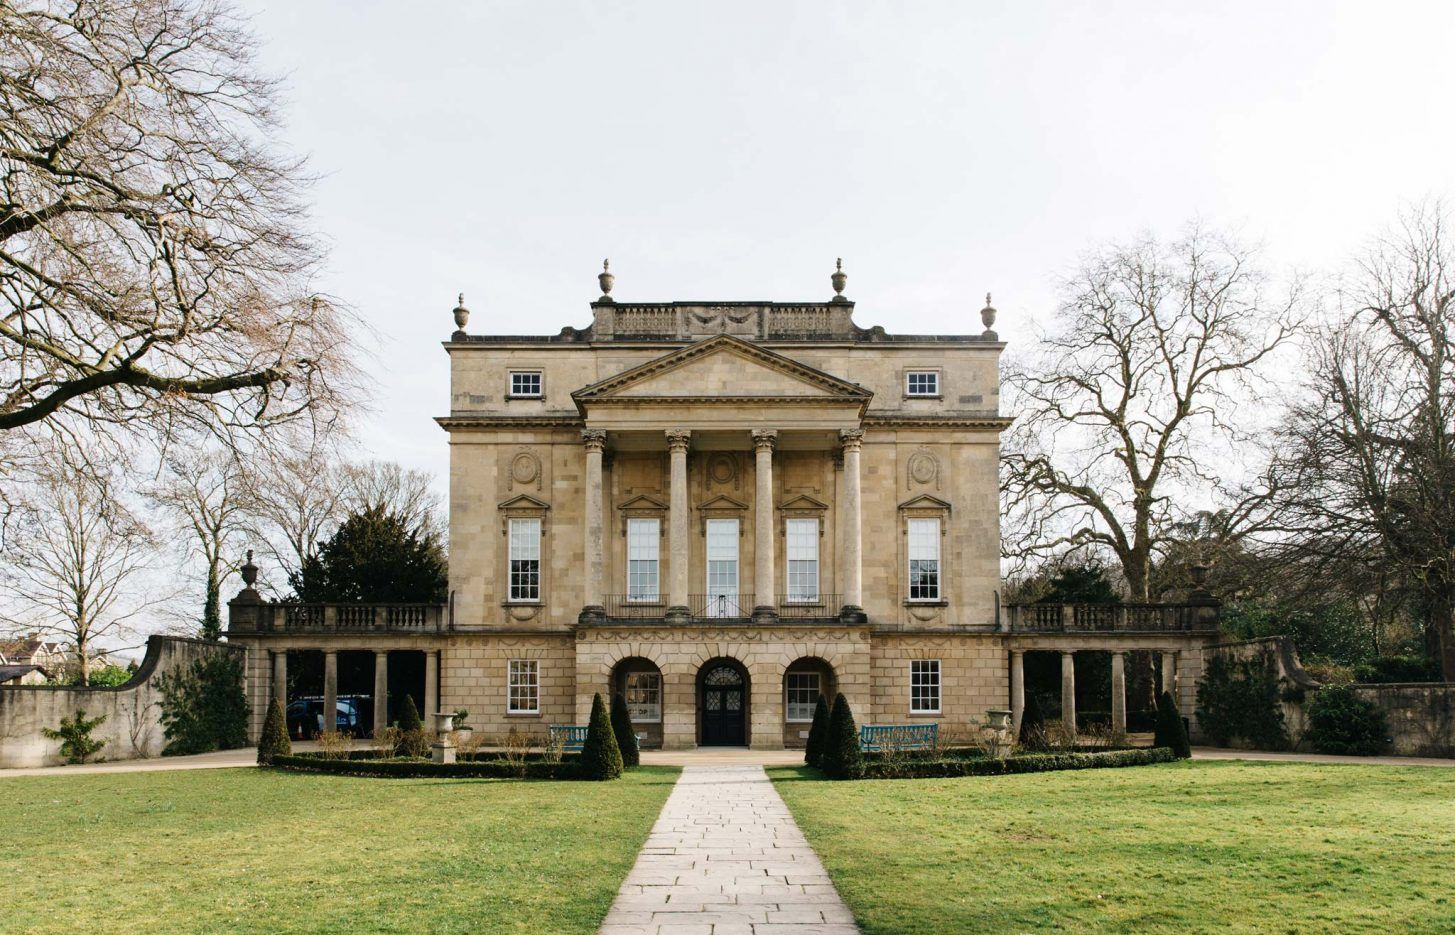 Jane Austen's Bath: The Holburne Museum